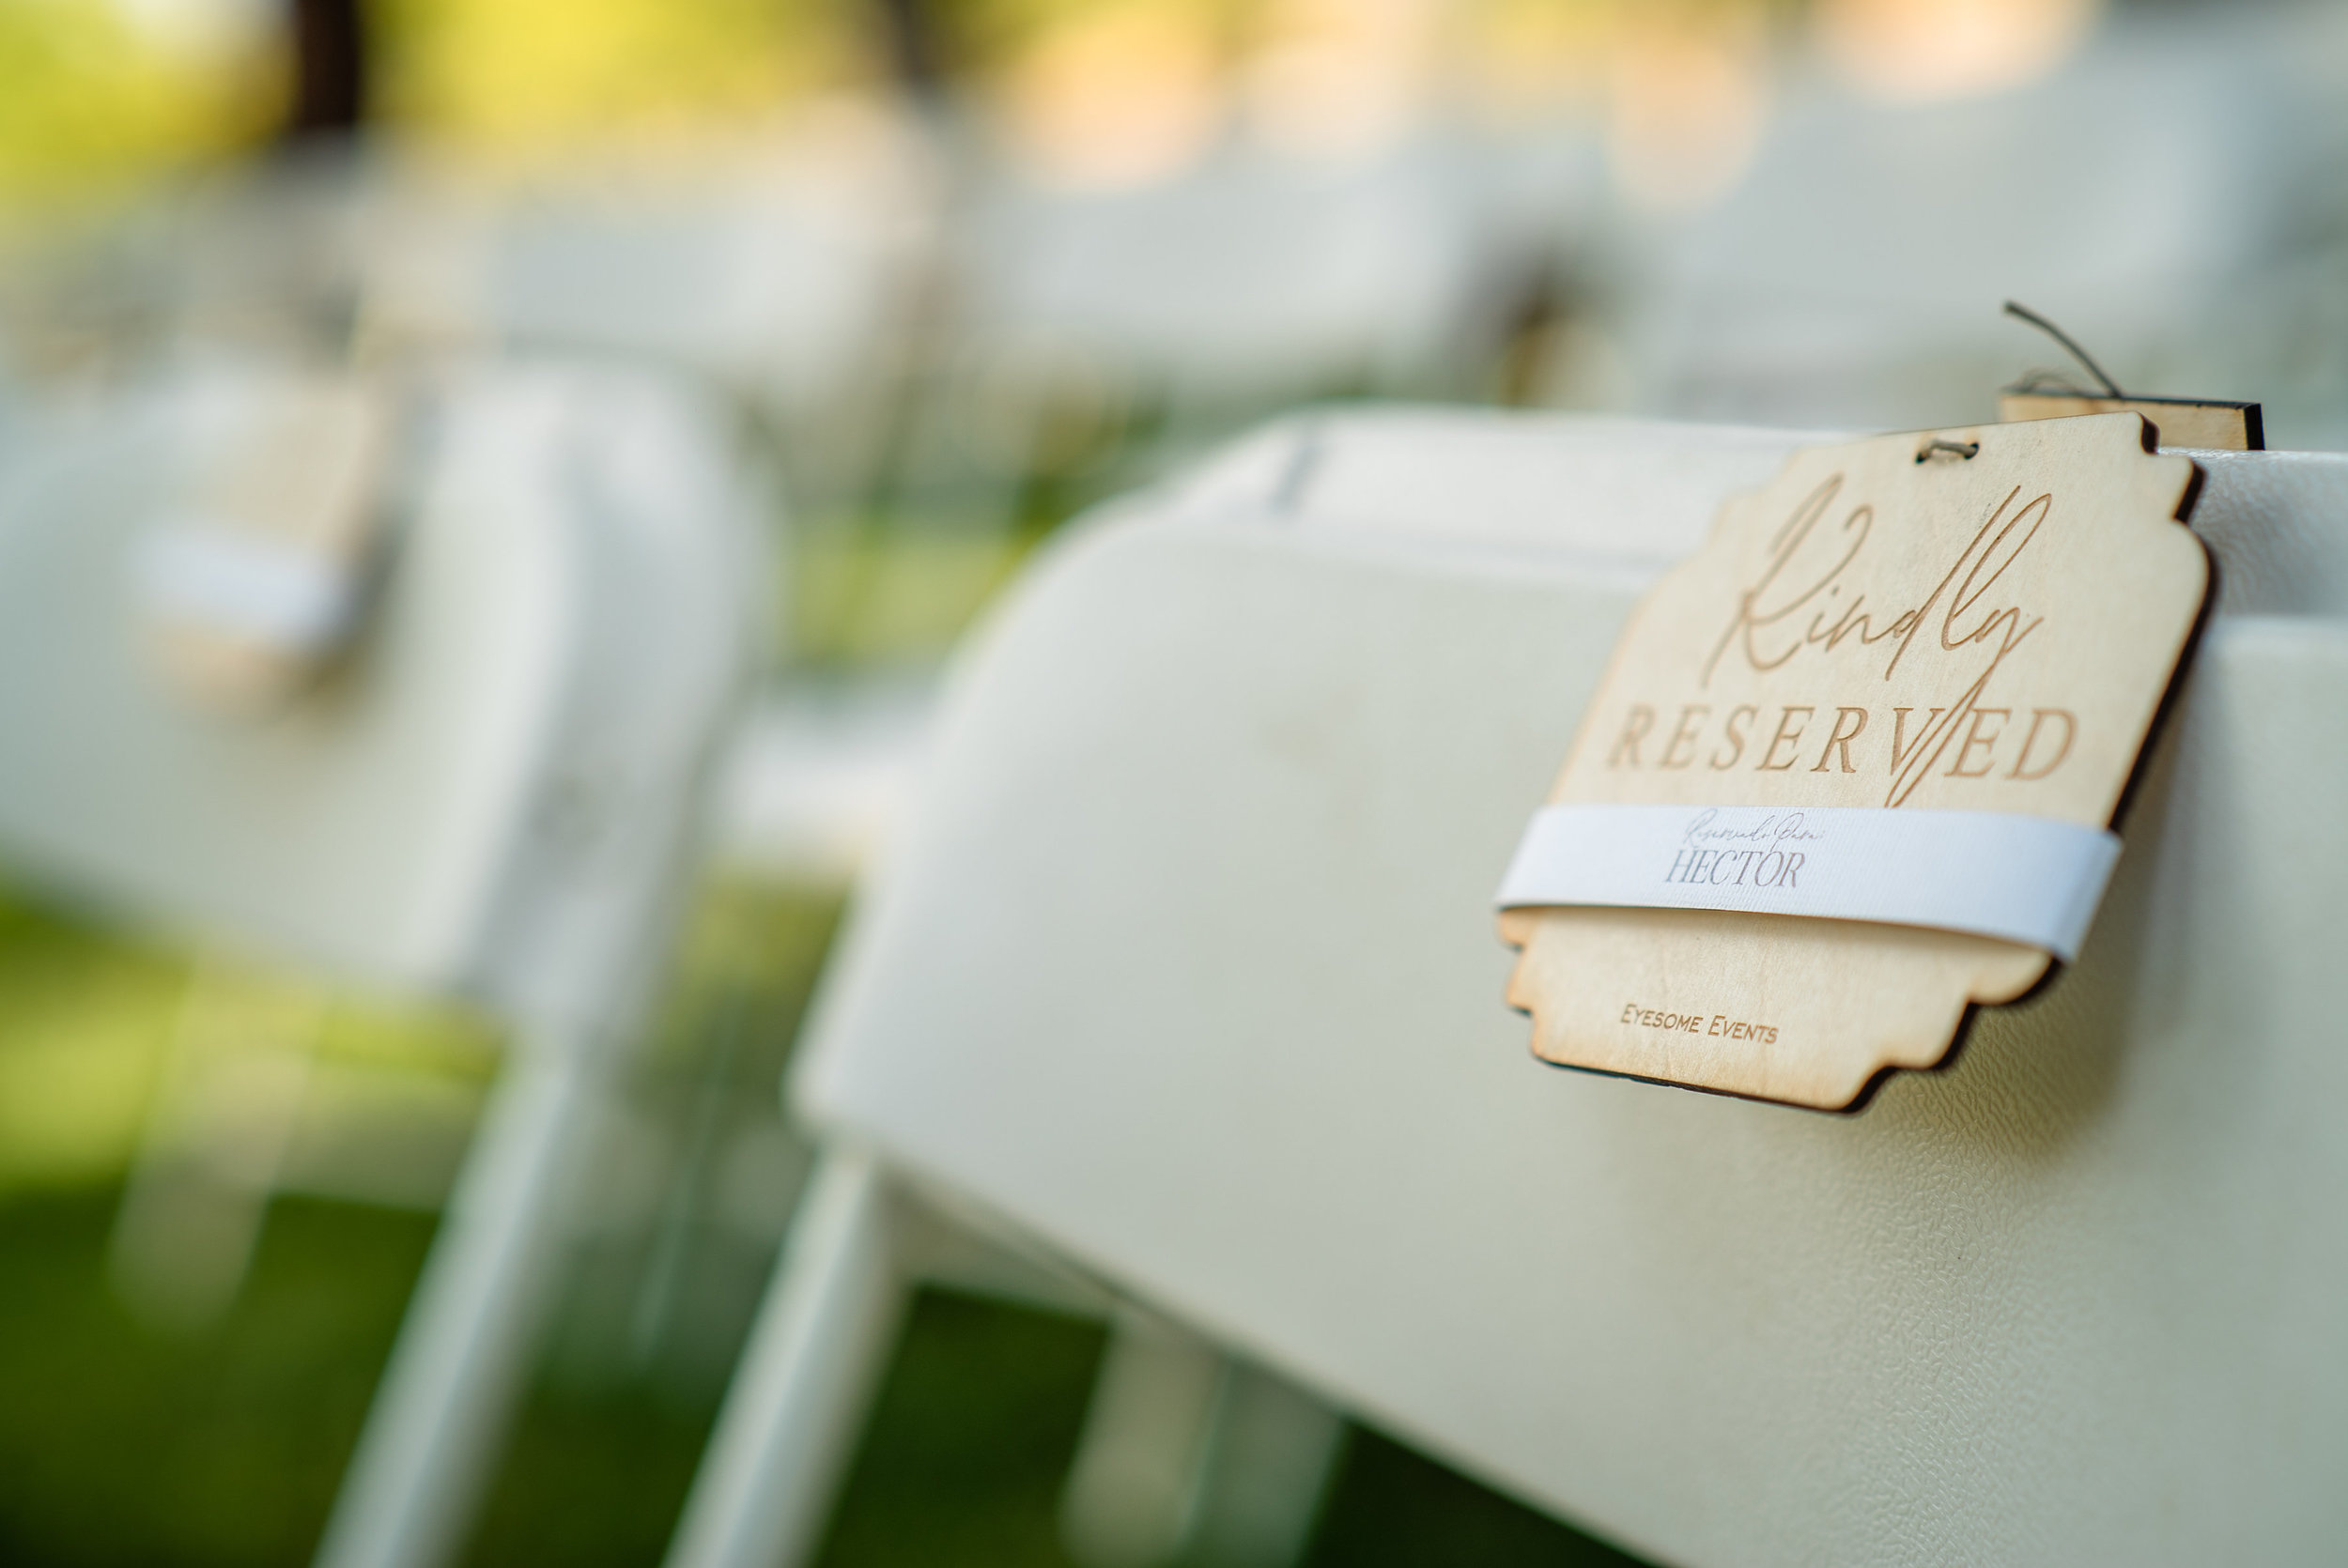 Copy of Kindly Reserved Ceremony